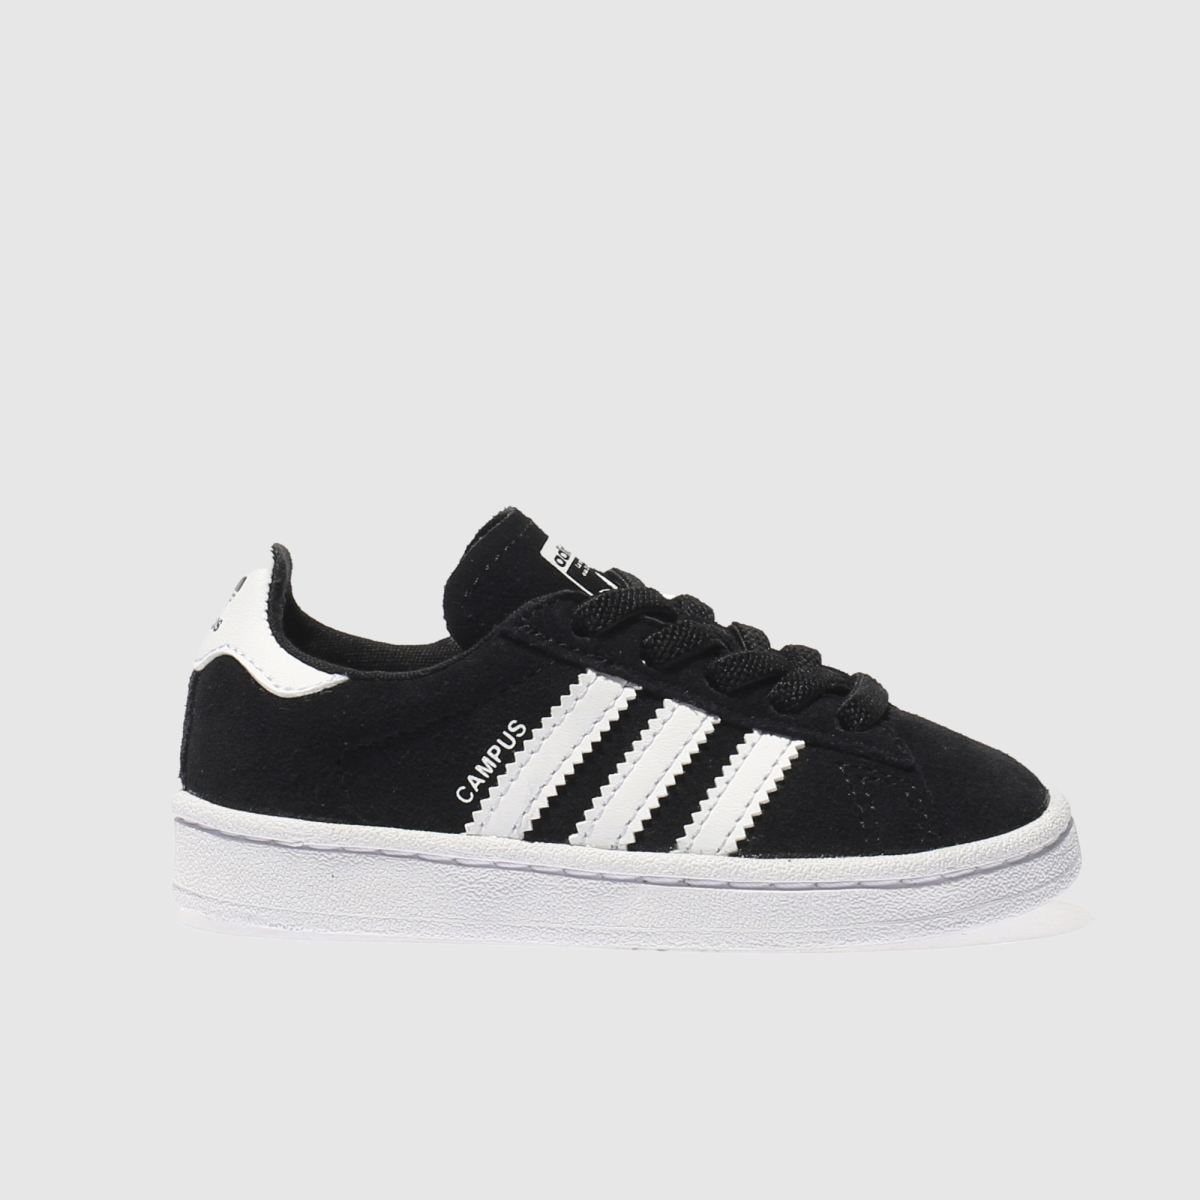 Adidas Black & White Campus Unisex Toddler Toddler